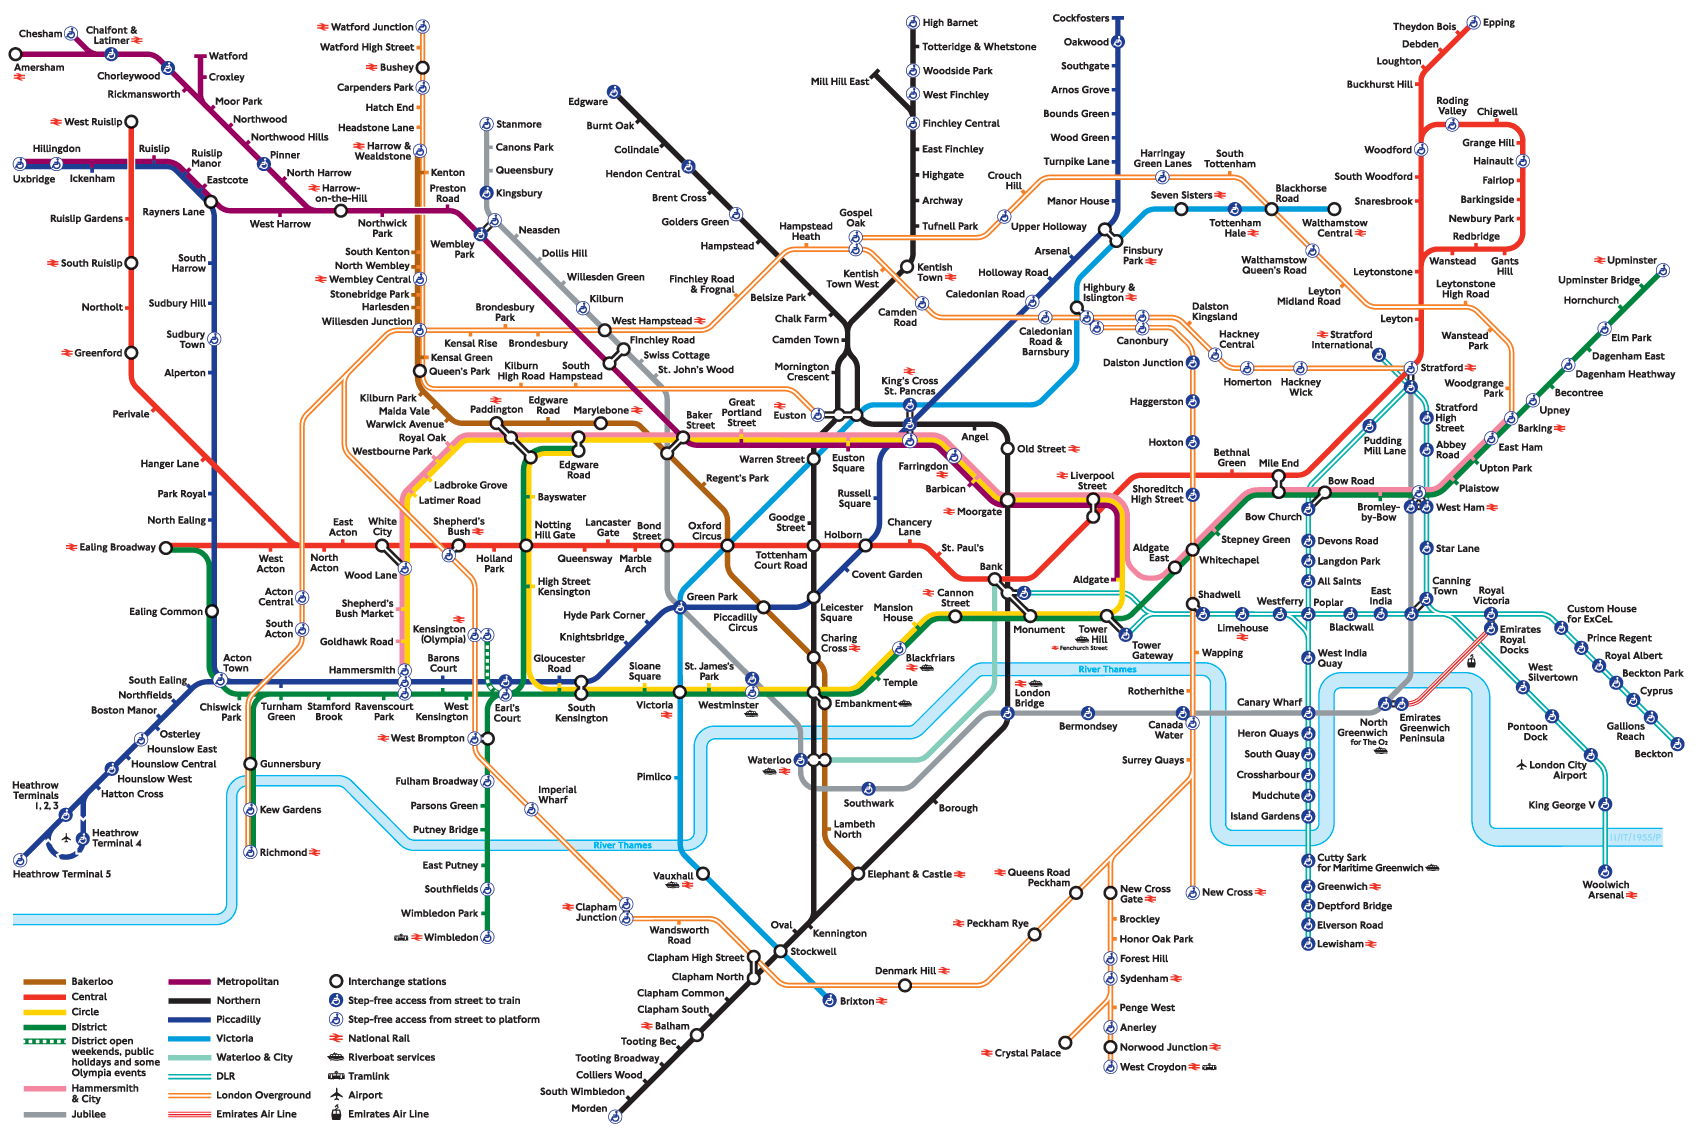 12 Best Underground Map images